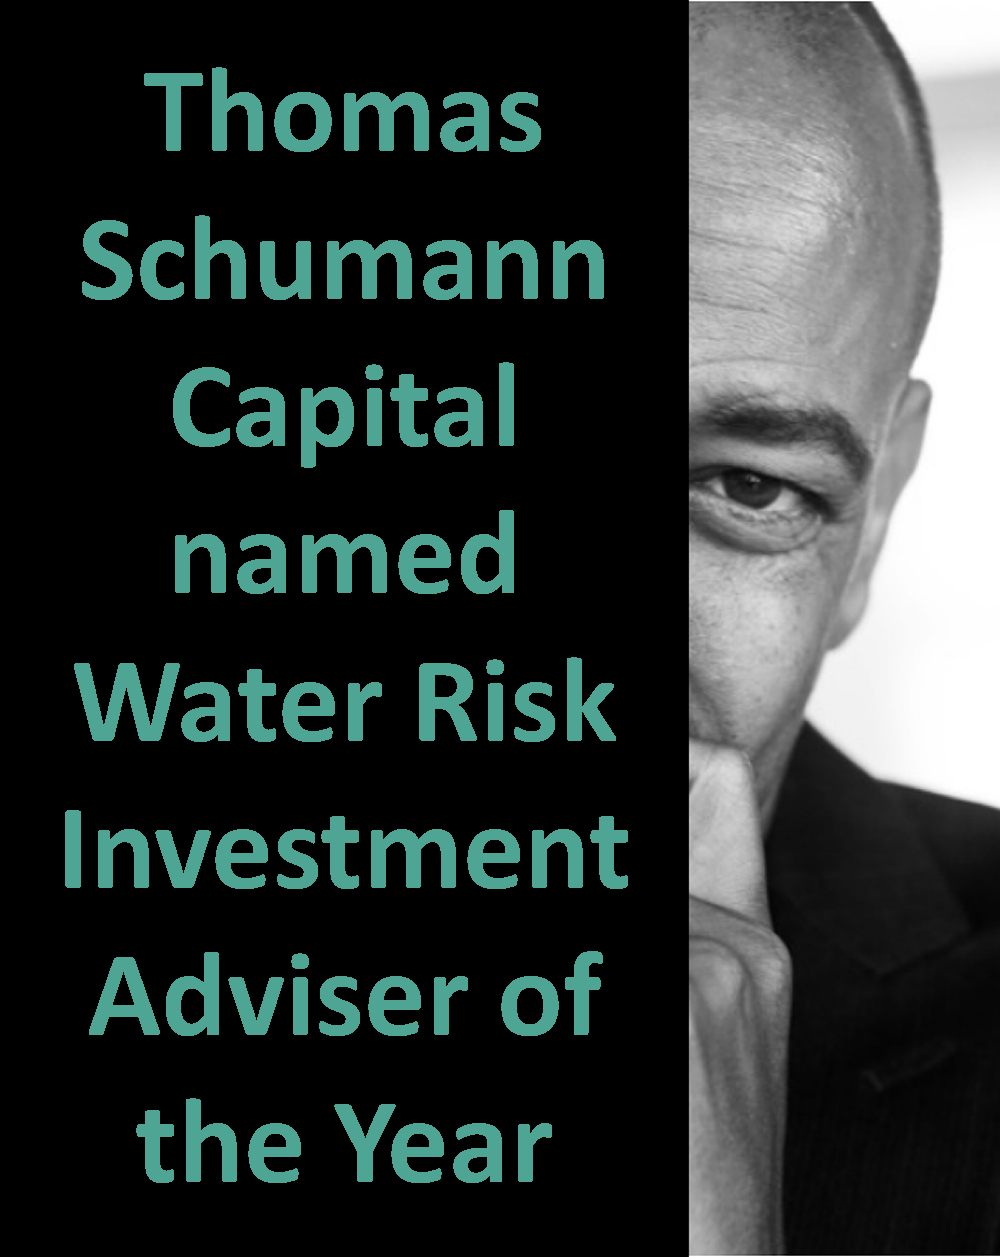 Best Thomas Schumann Capital named Water Risk Investment Adviser of the Year 2018